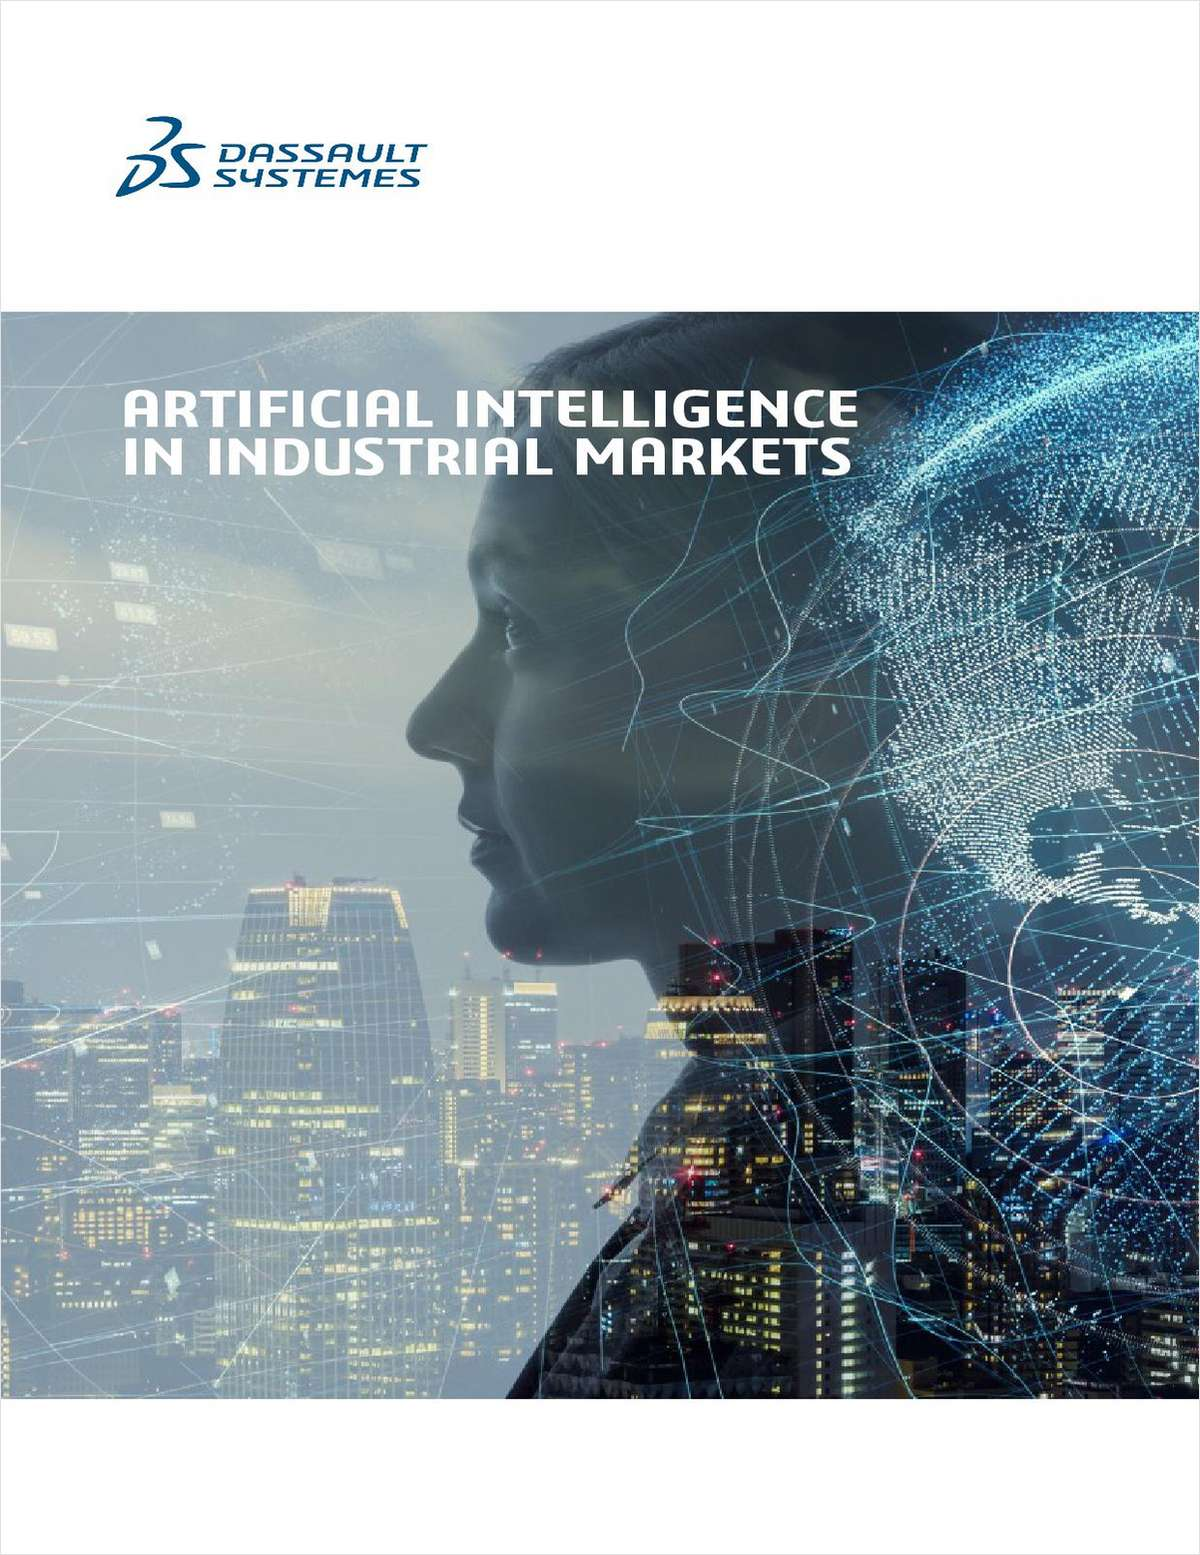 ARTIFICIAL INTELLIGENCE IN INDUSTRIAL MARKETS